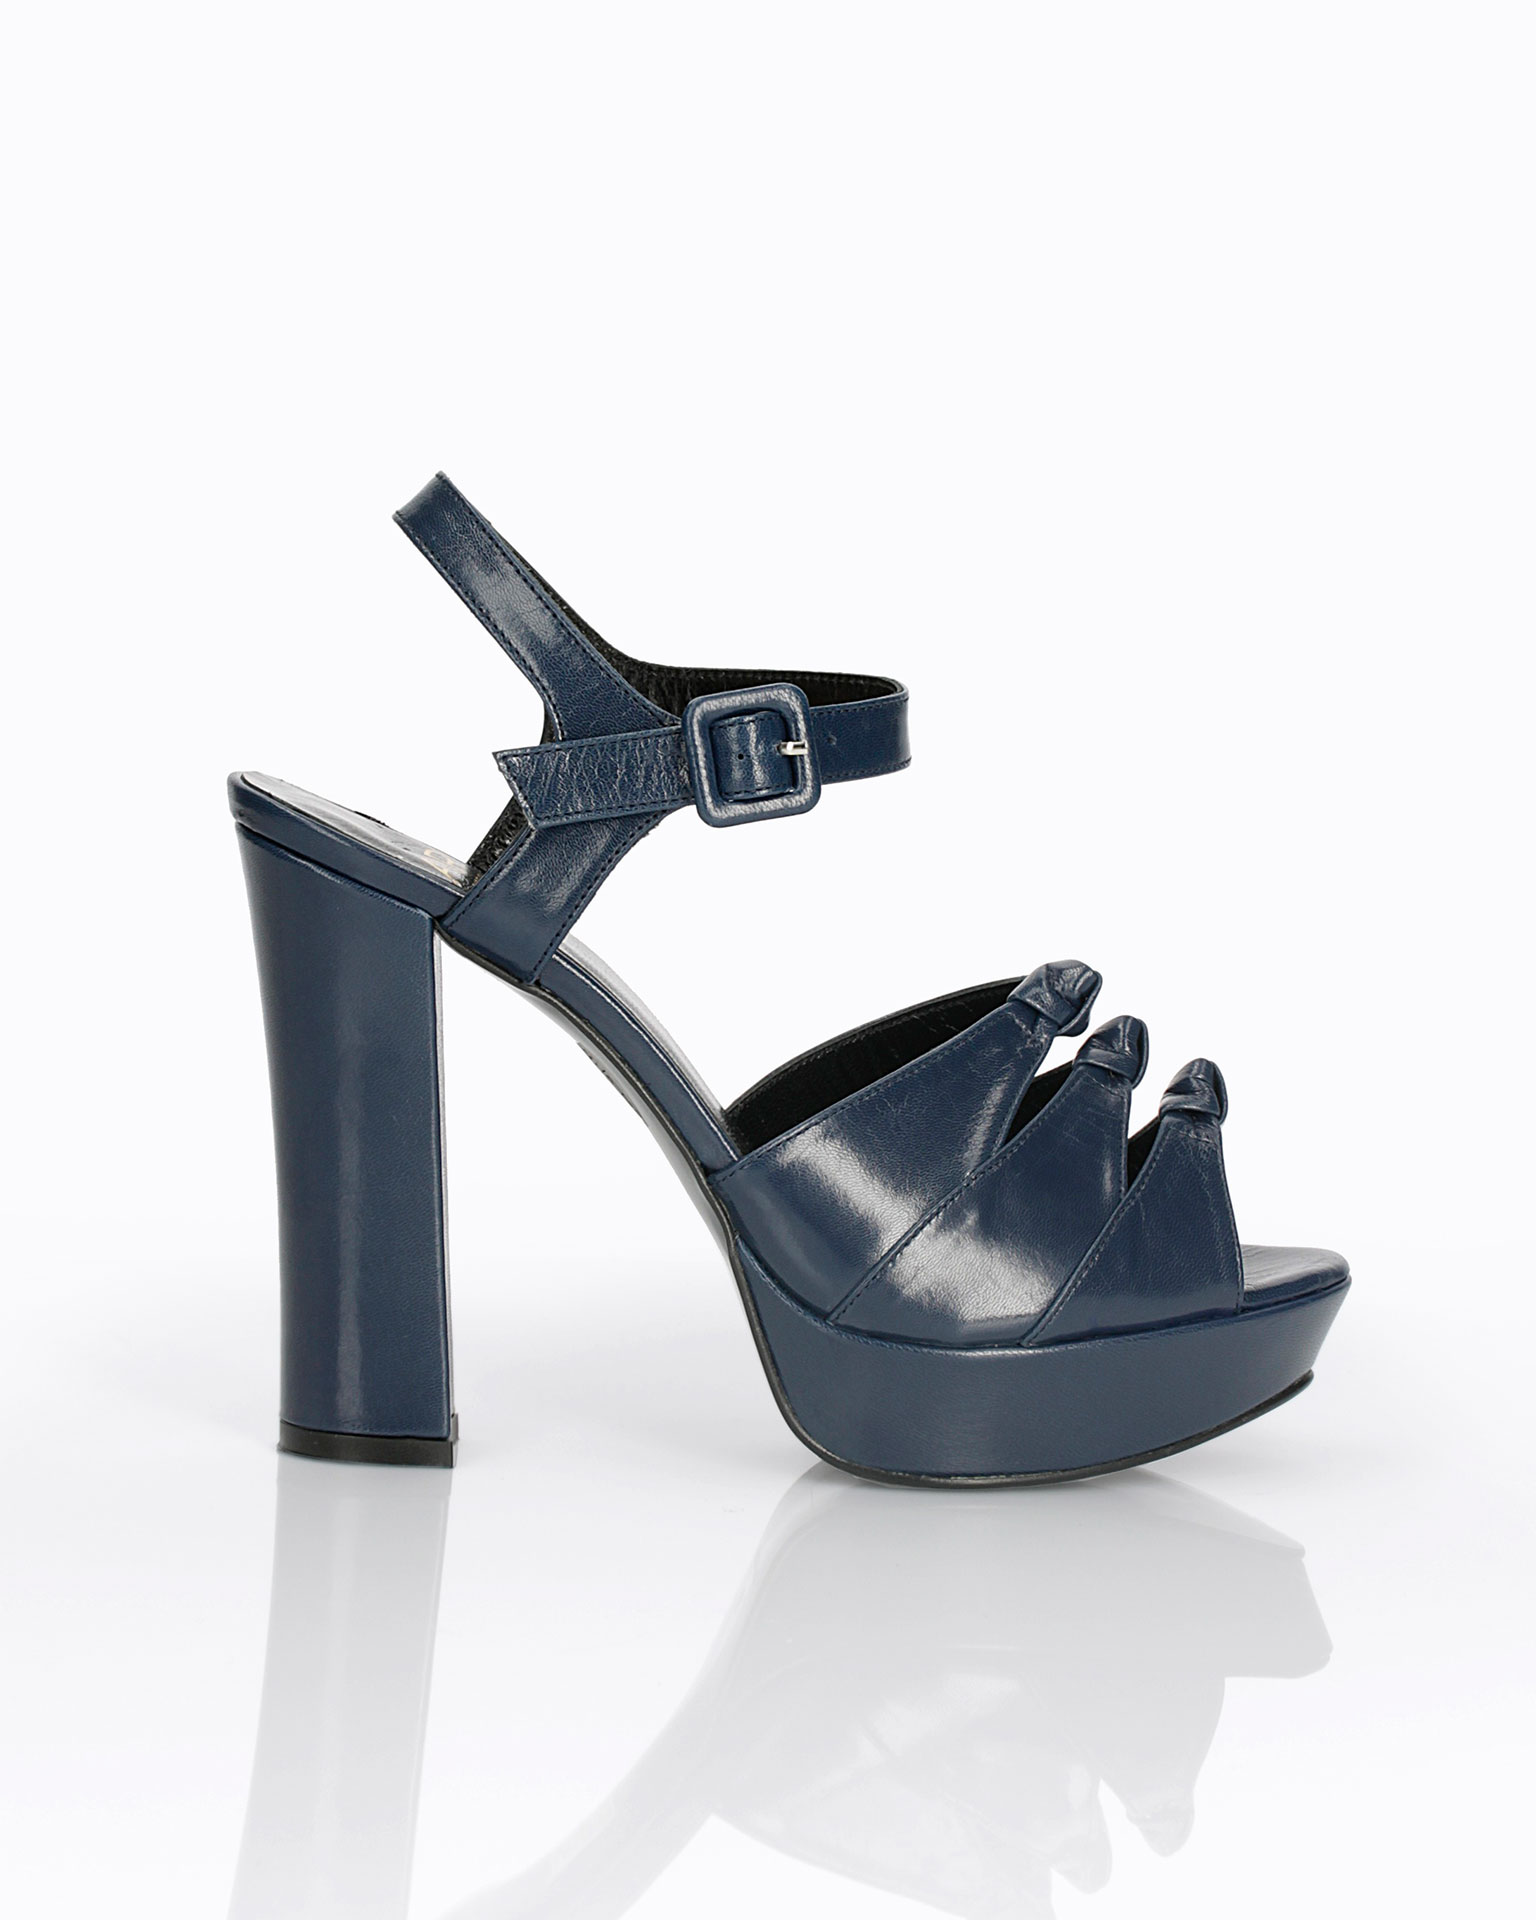 Leather cocktail shoe. With high heel and instep with knot detail. 2019 FIESTA AIRE BARCELONA Collection.